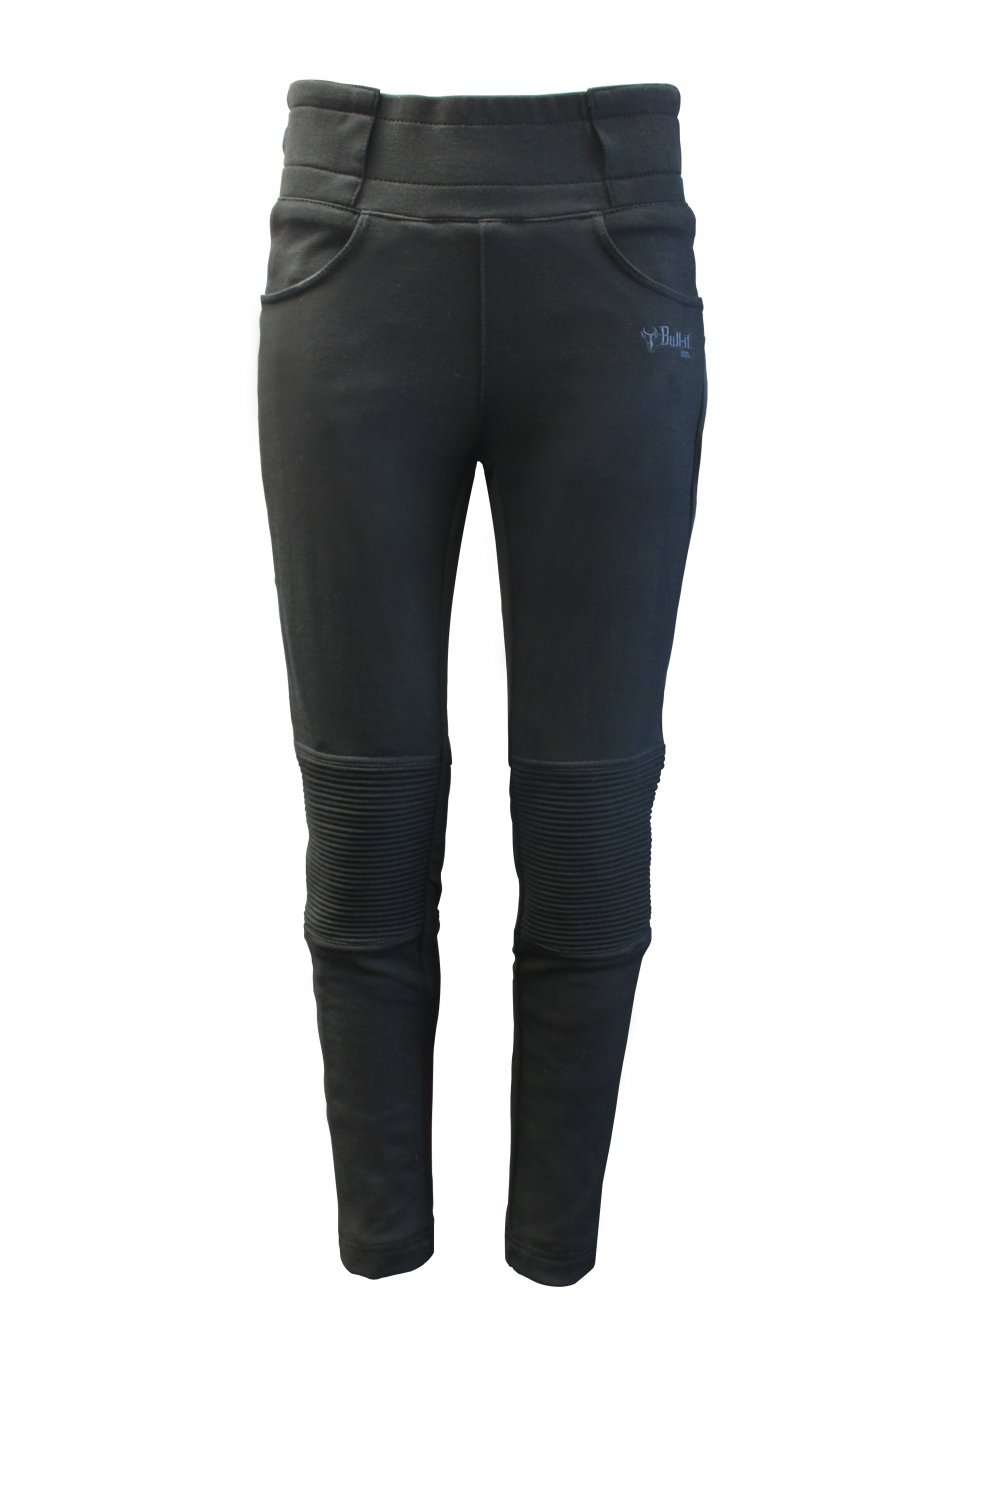 Bull-it MC jeans - SP120 Tech - Dame Envy Leggings Regular